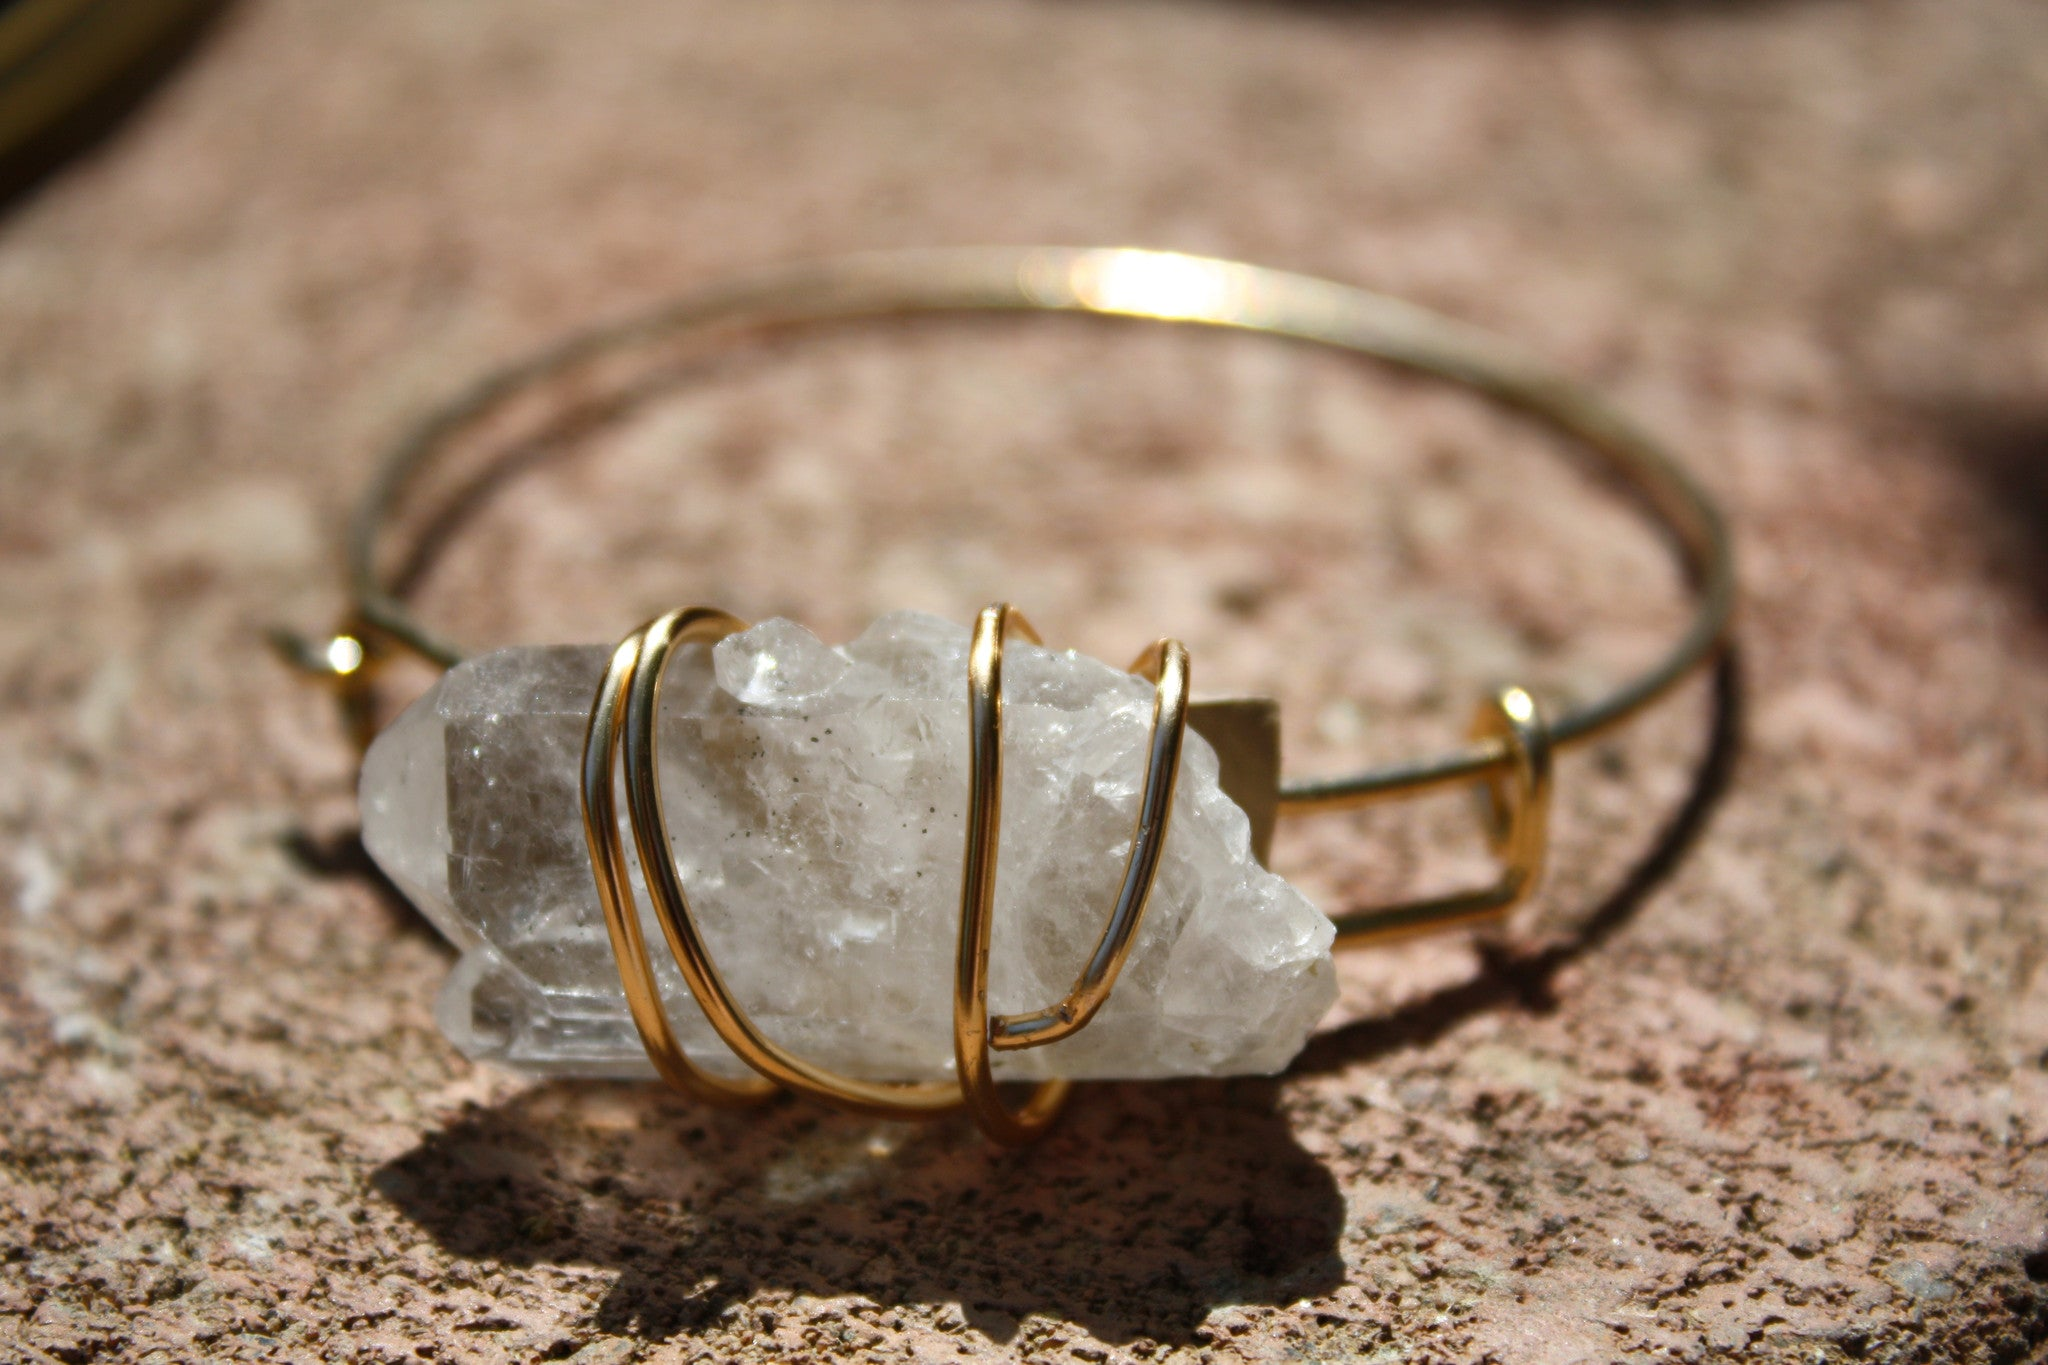 Crystal Quartz Wrist Power Bracelet